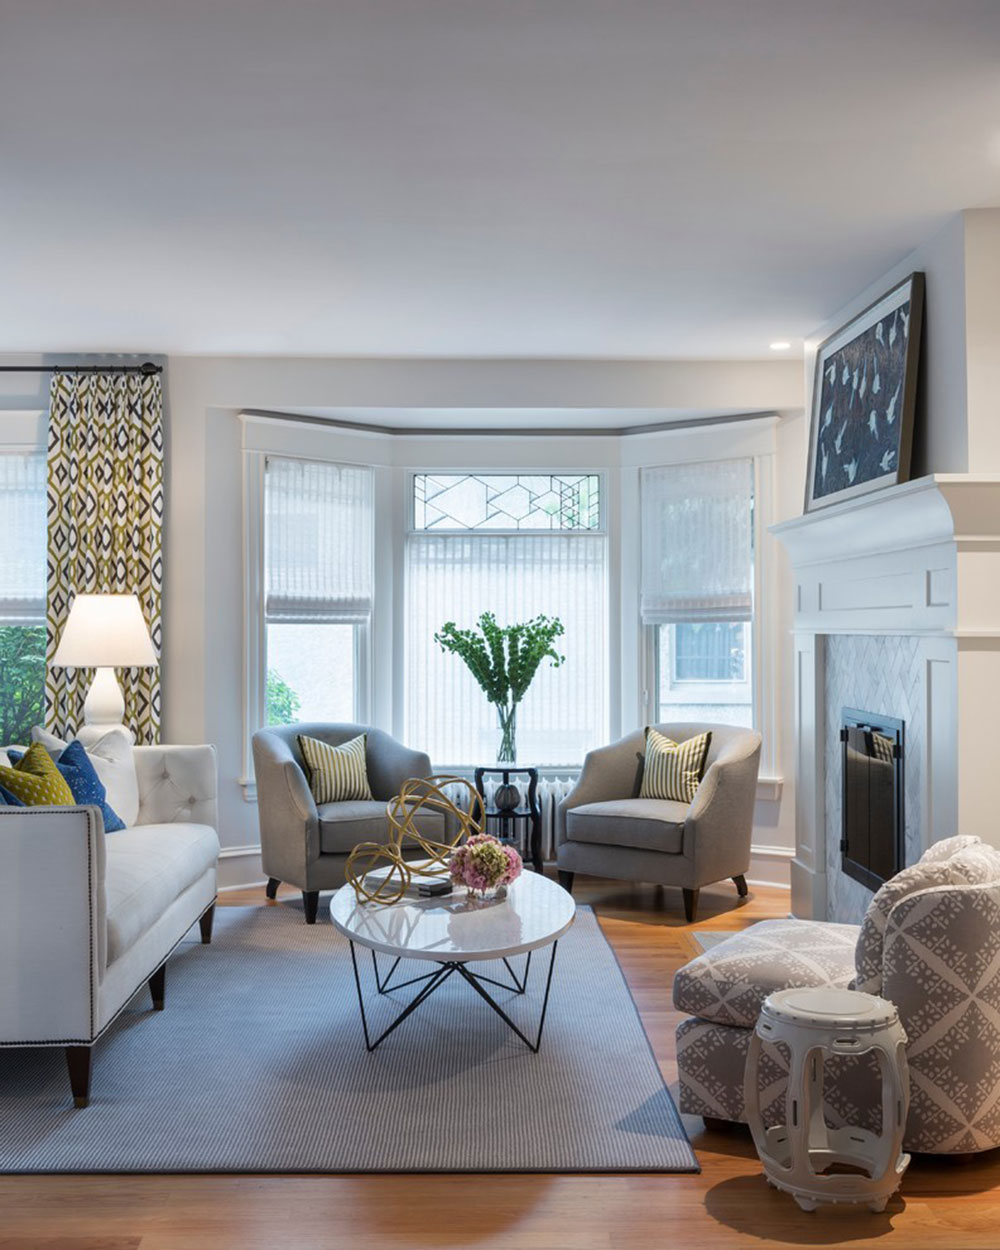 Homey-Feelings-With-These-Bay-Window-Decor-15 Bay Window Decor to try out in your home